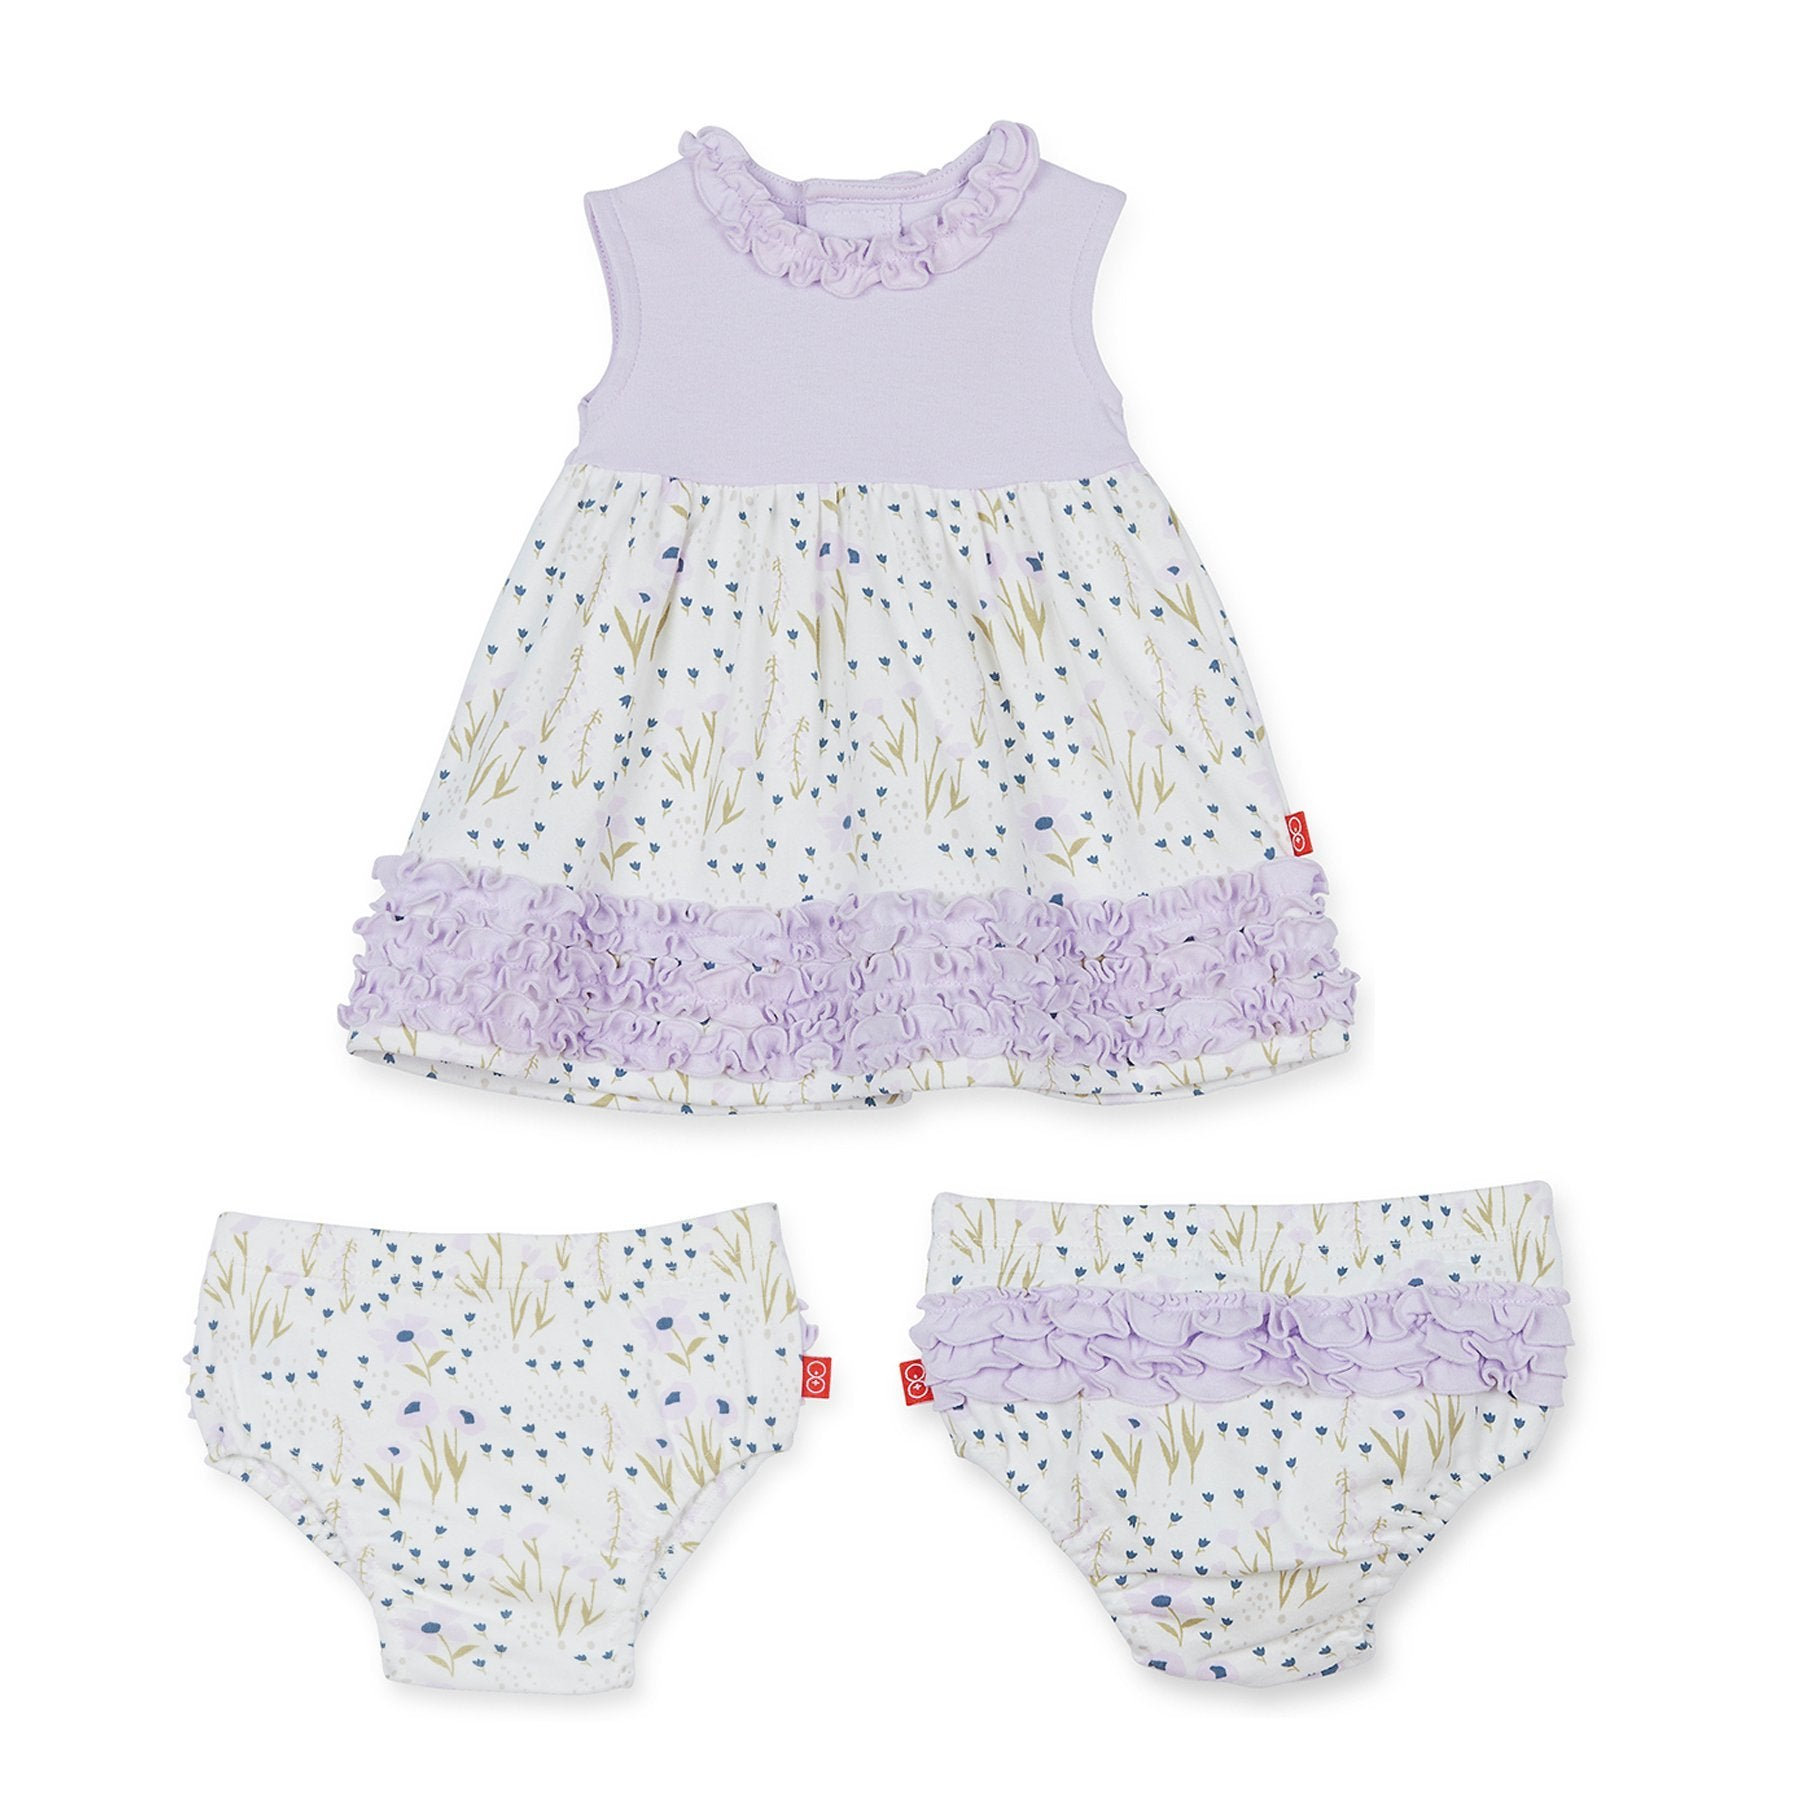 Fieldston Cotton Magnetic Dress & Diaper Cover Set - Noa & Vivi Kids Apparel